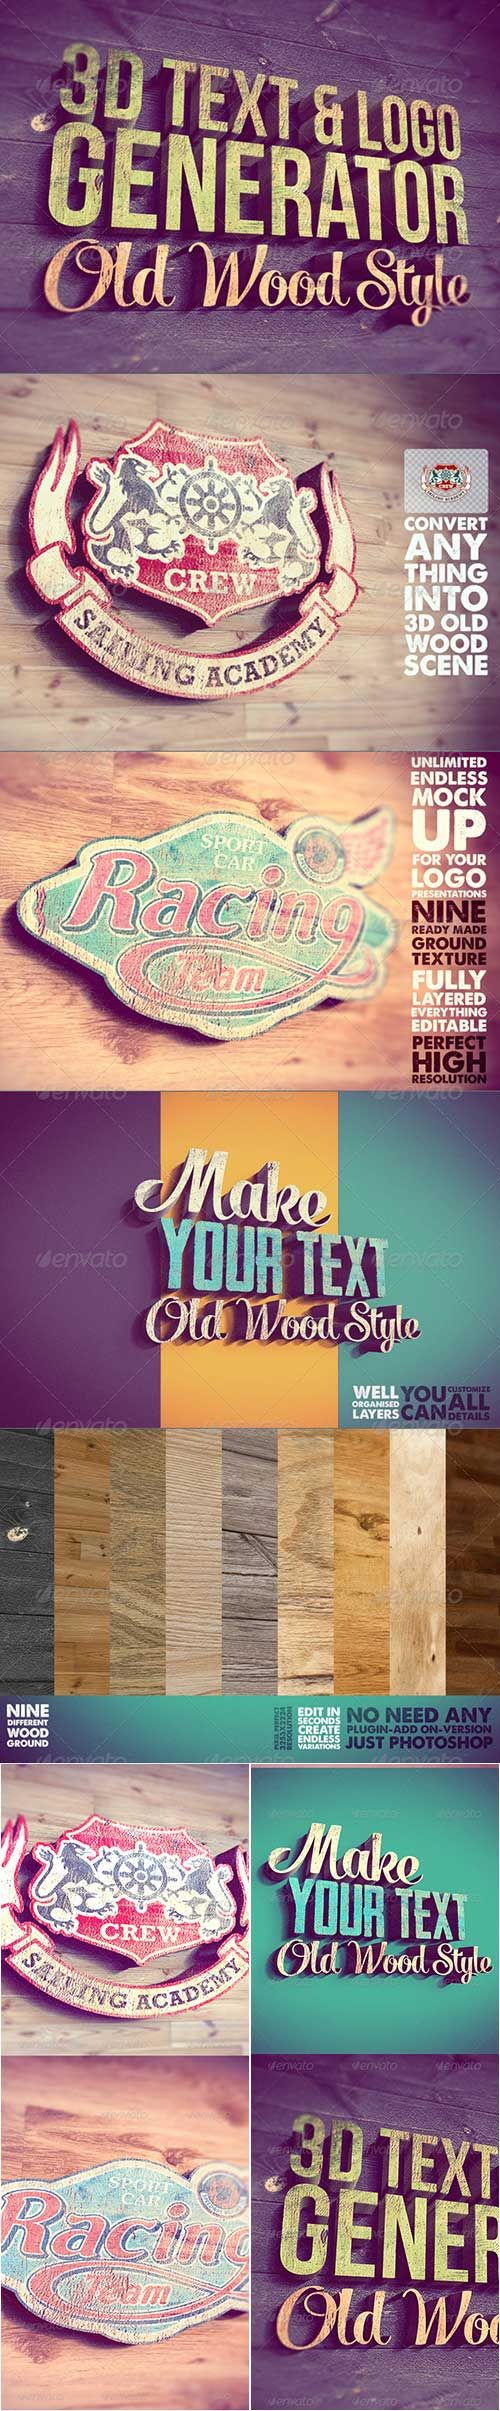 Mysterious poster design with 3d text - 3d Text Logo Generator 2 Free Hero Graphic Design Vectors Aep Projects Psd Sources